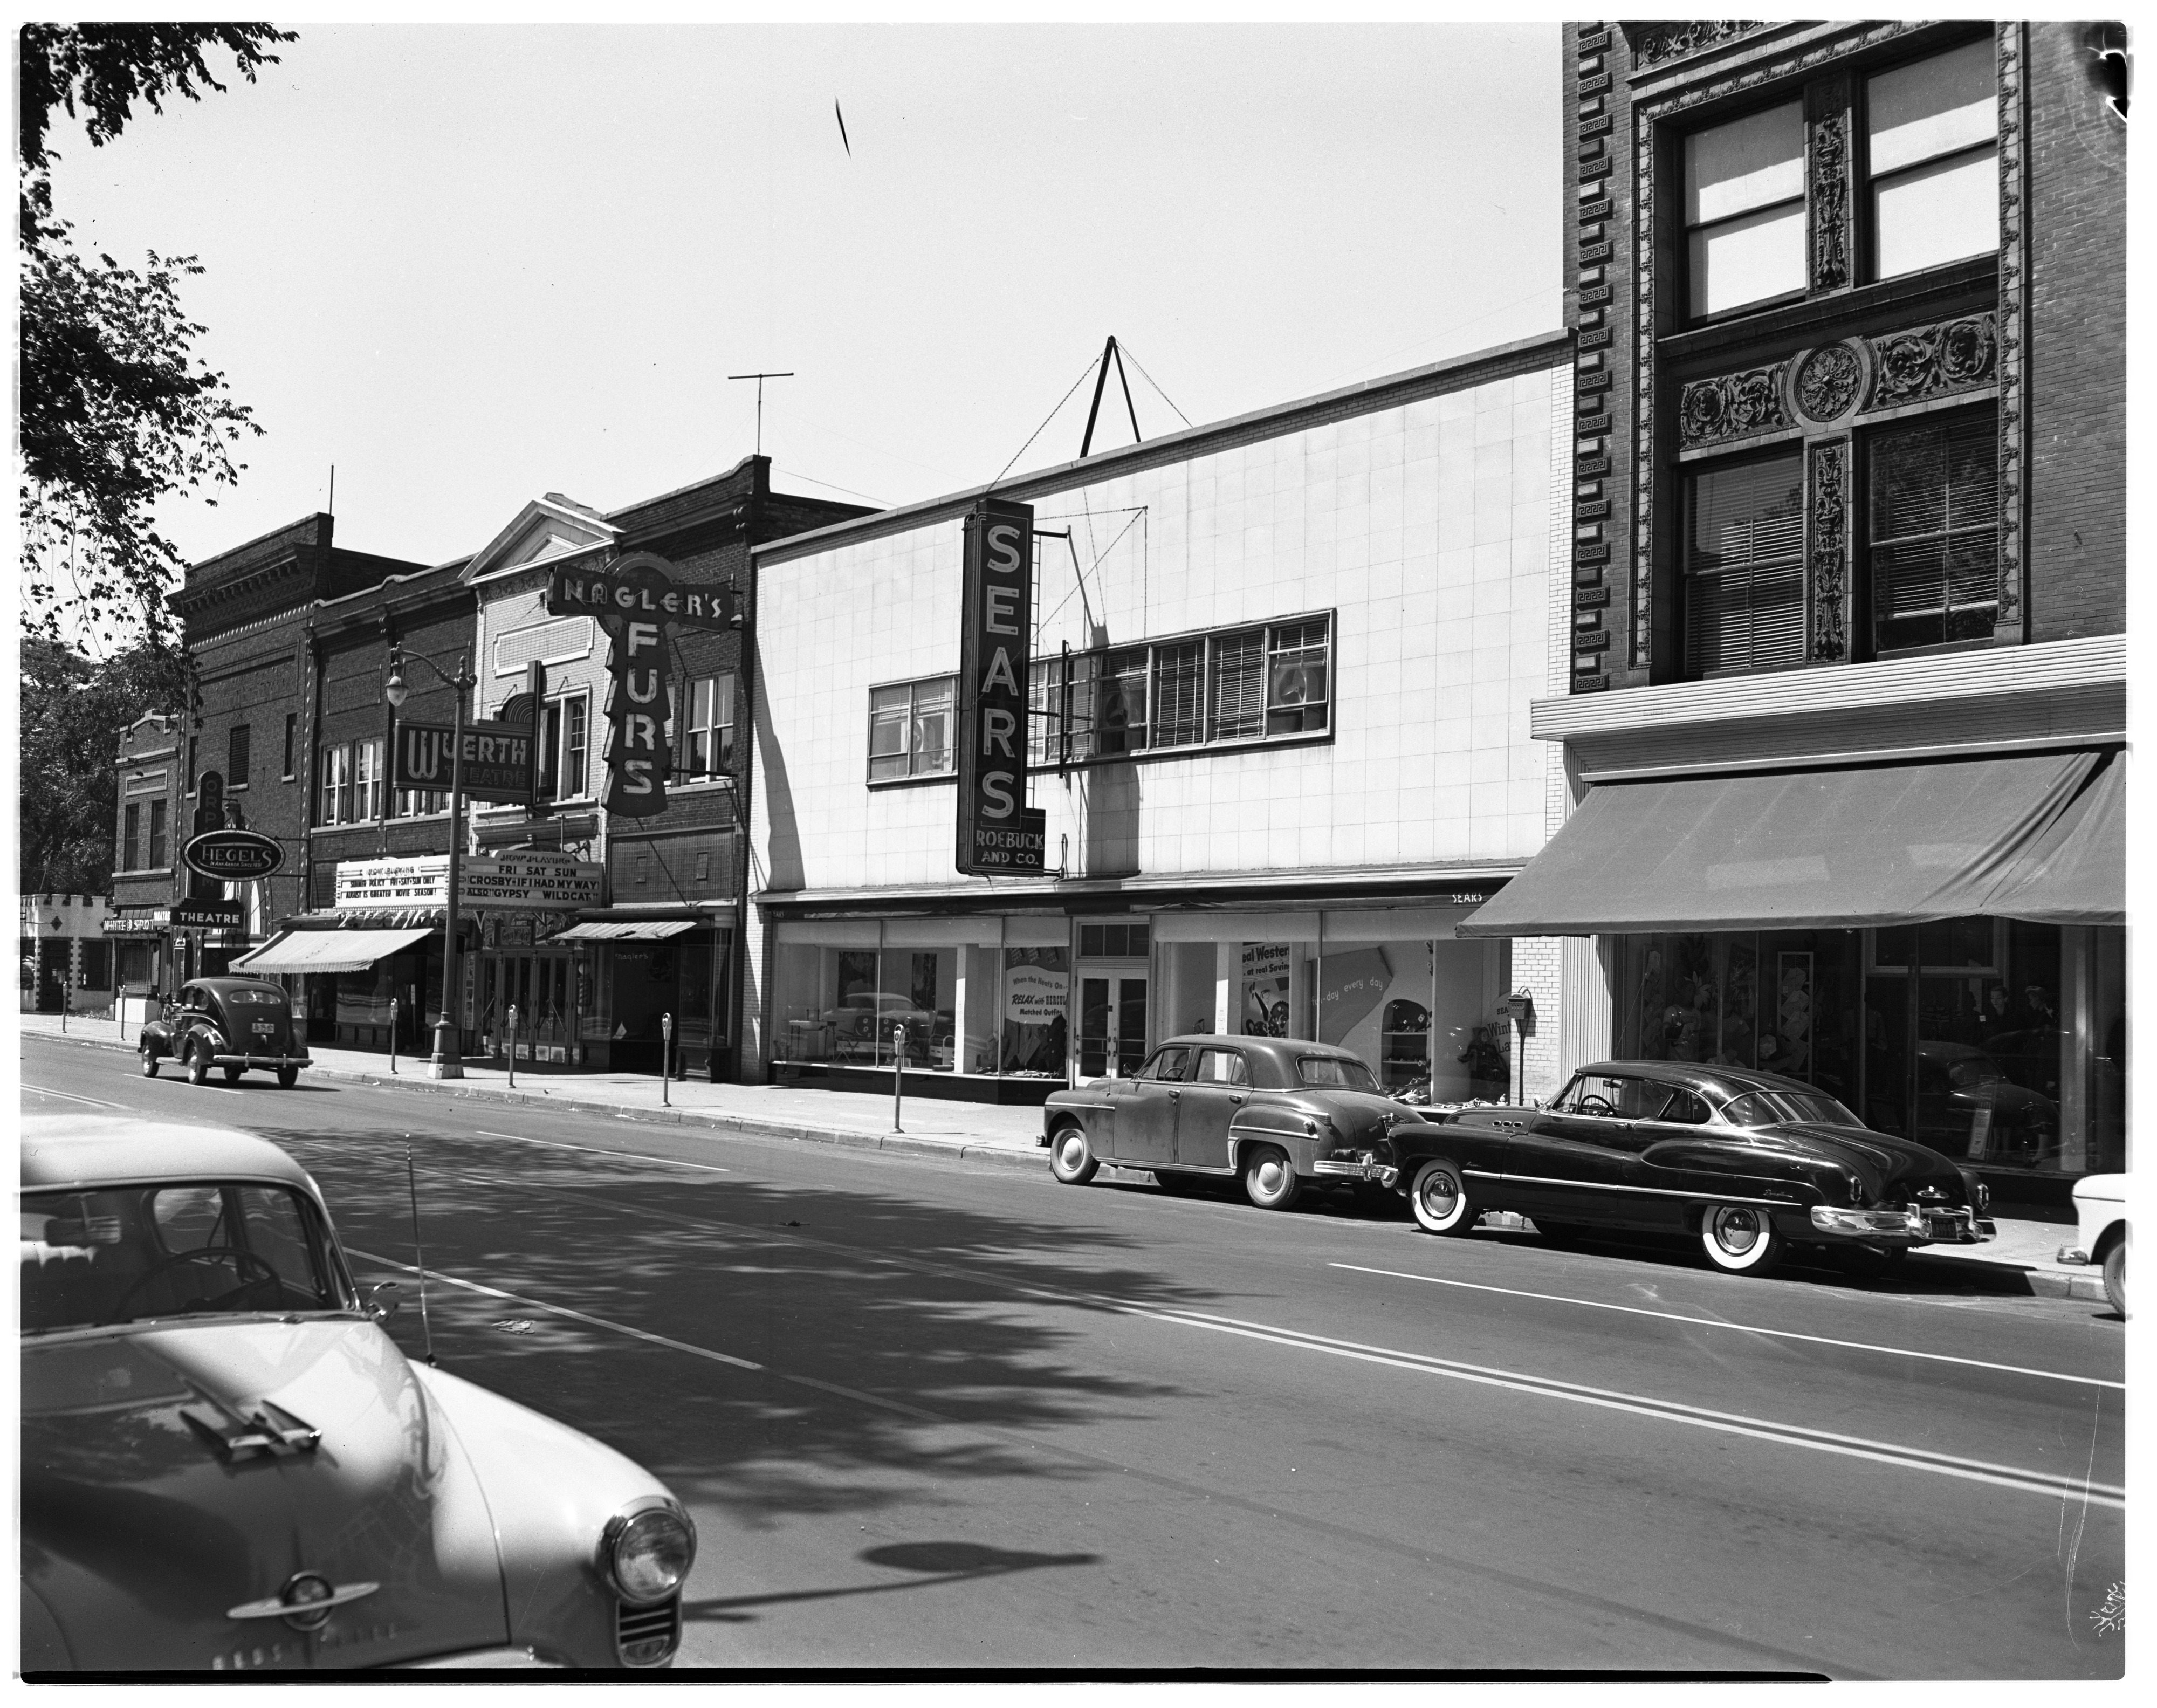 Sears Store, 300 Block, Main Street, August 1950 image